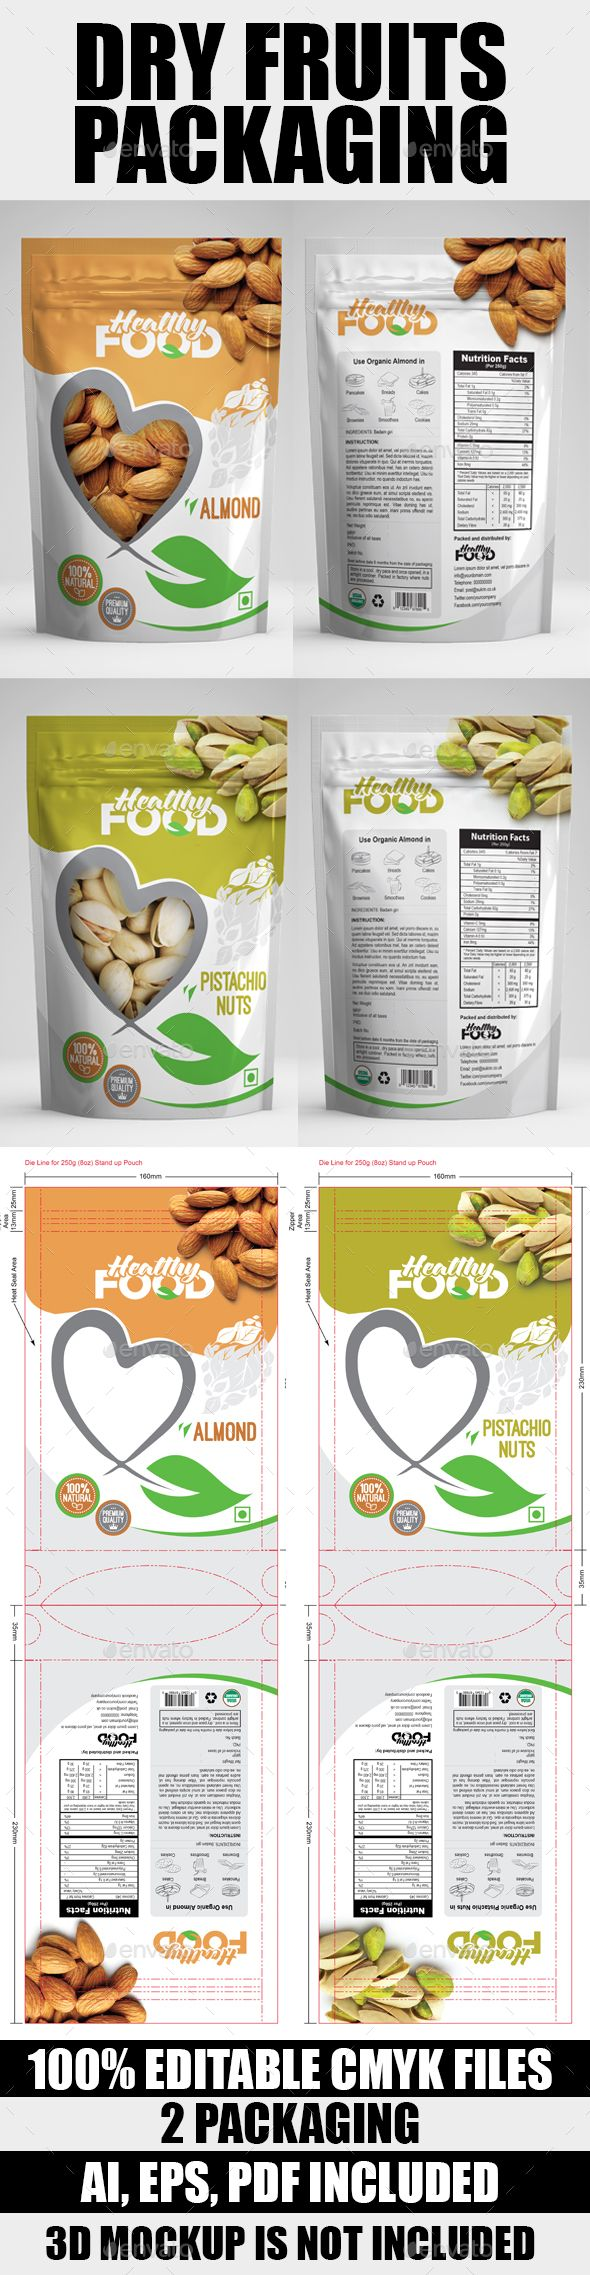 Dry Fuits Bag Packaging Template AI Illustrator. Download here: http://graphicriver.net/item/dry-fuits-bag-packaging/16828662?ref=ksioks